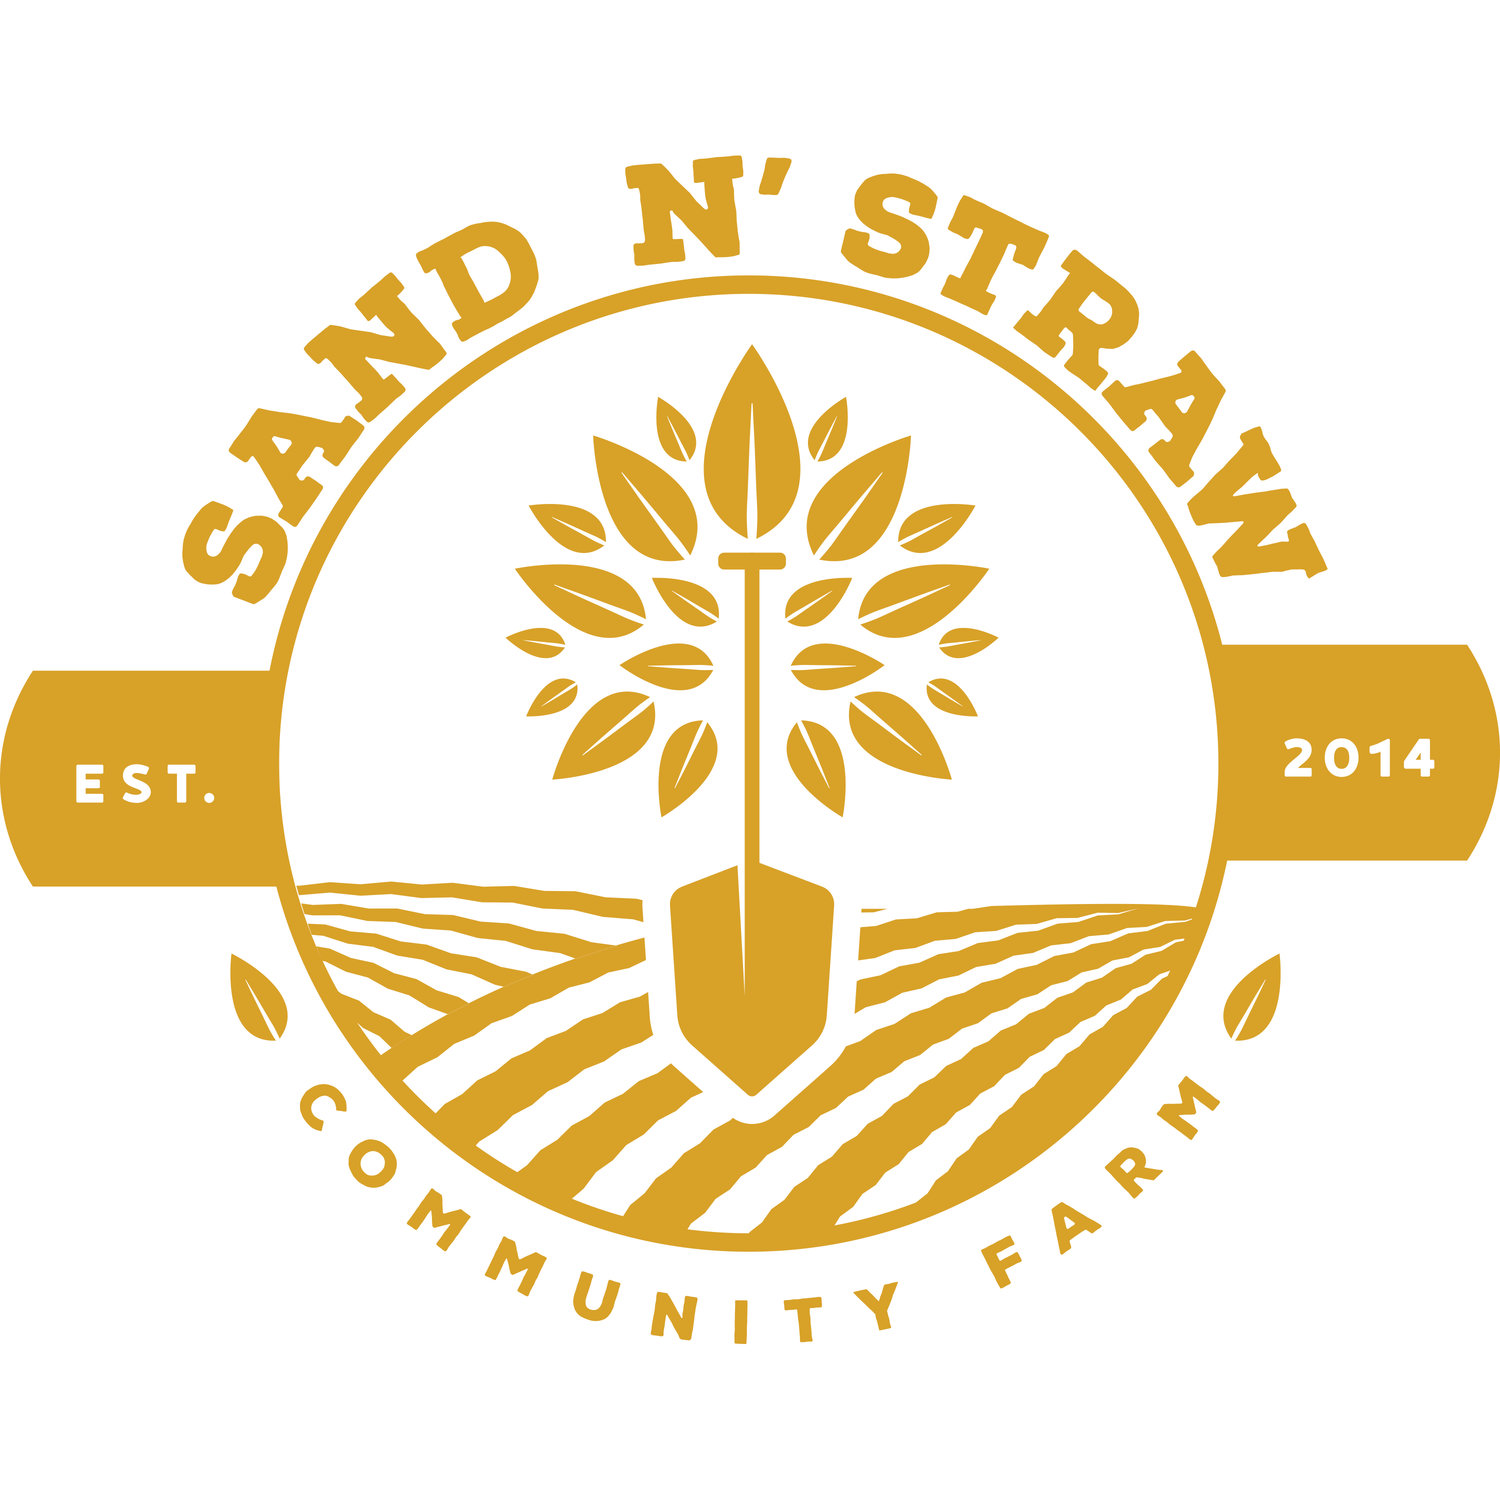 Sand n' Straw Farms